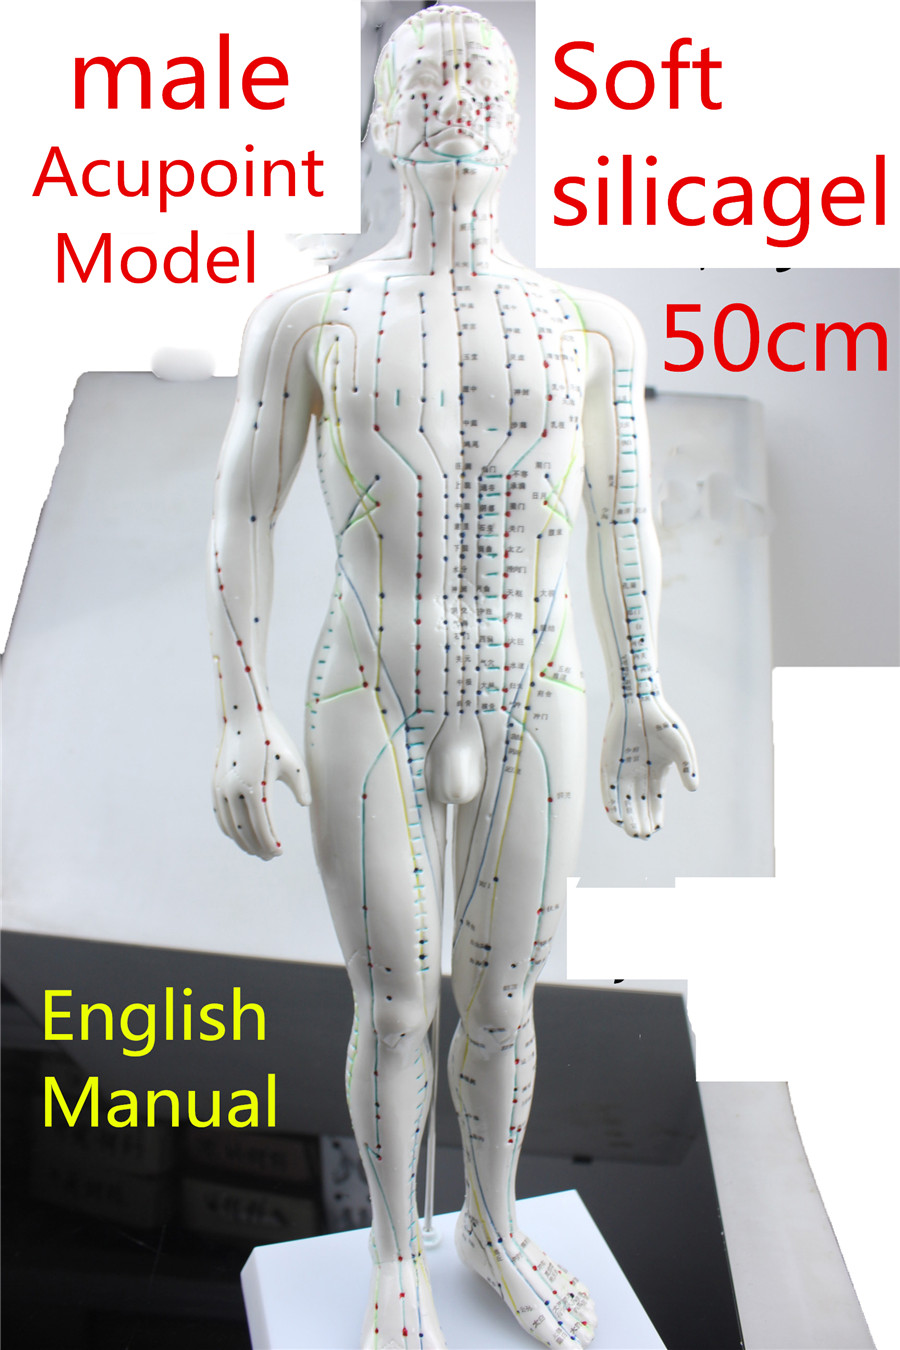 HD Soft silicagel Acupuncture Model 50cm male with Base Human acupuncture meridians model Acupoint Model Acupuncture massage<br>